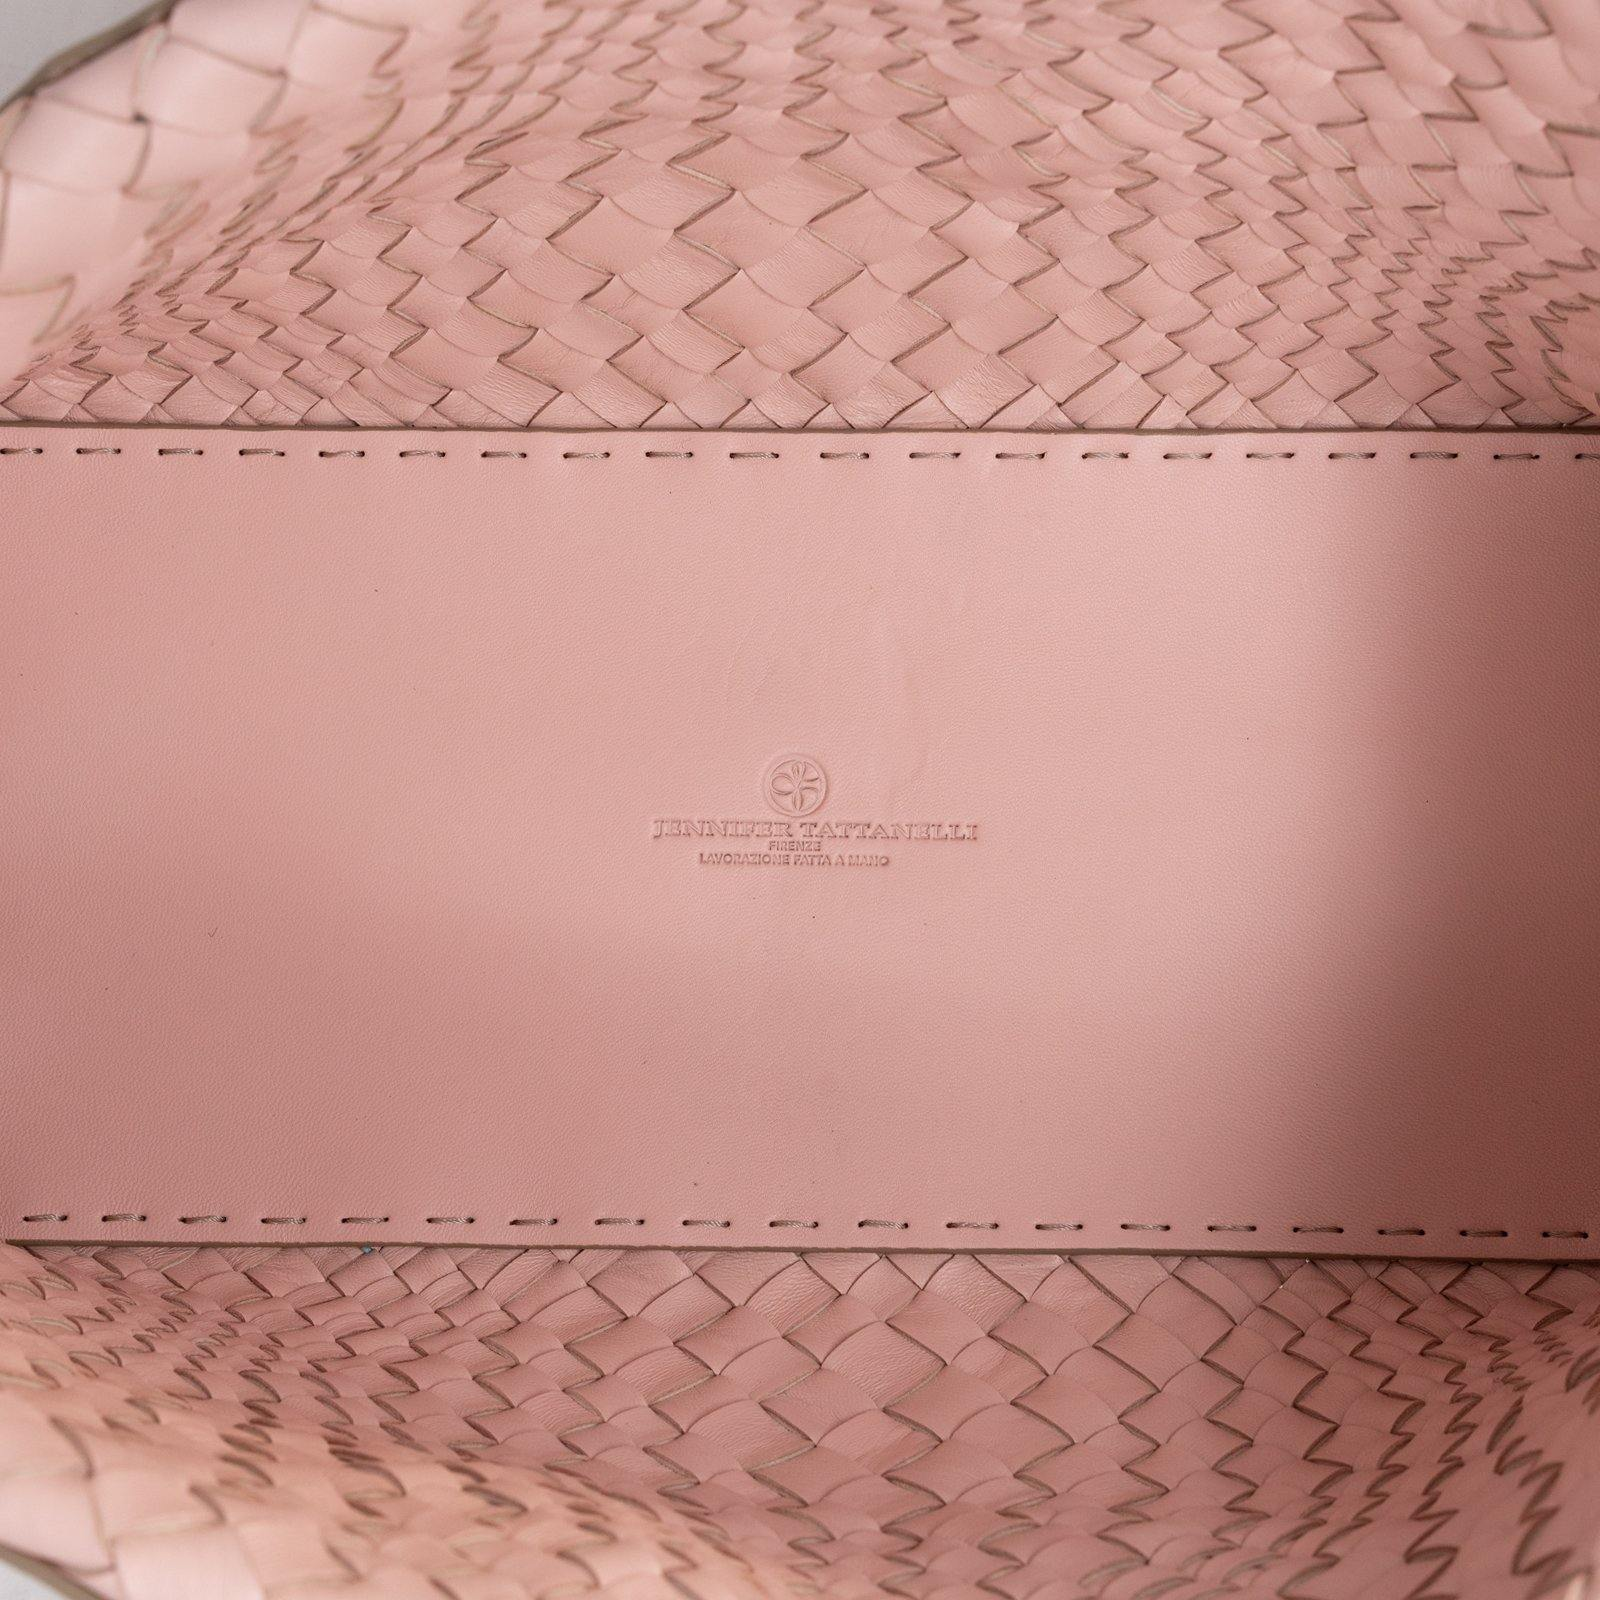 Women Leather Intreccio Optical Bag in Sabbia and Pink